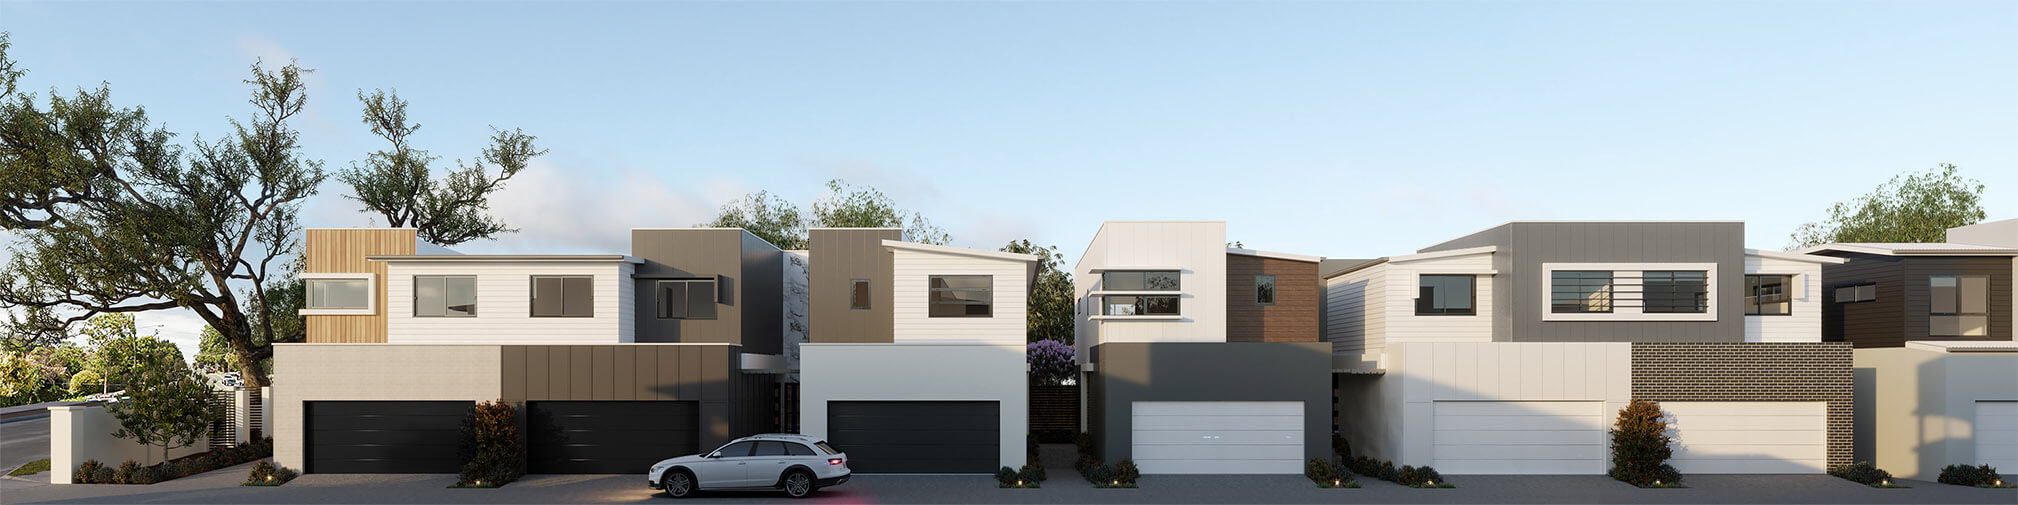 Brisbane Townhouses 4 bedroom Evoke McDowall